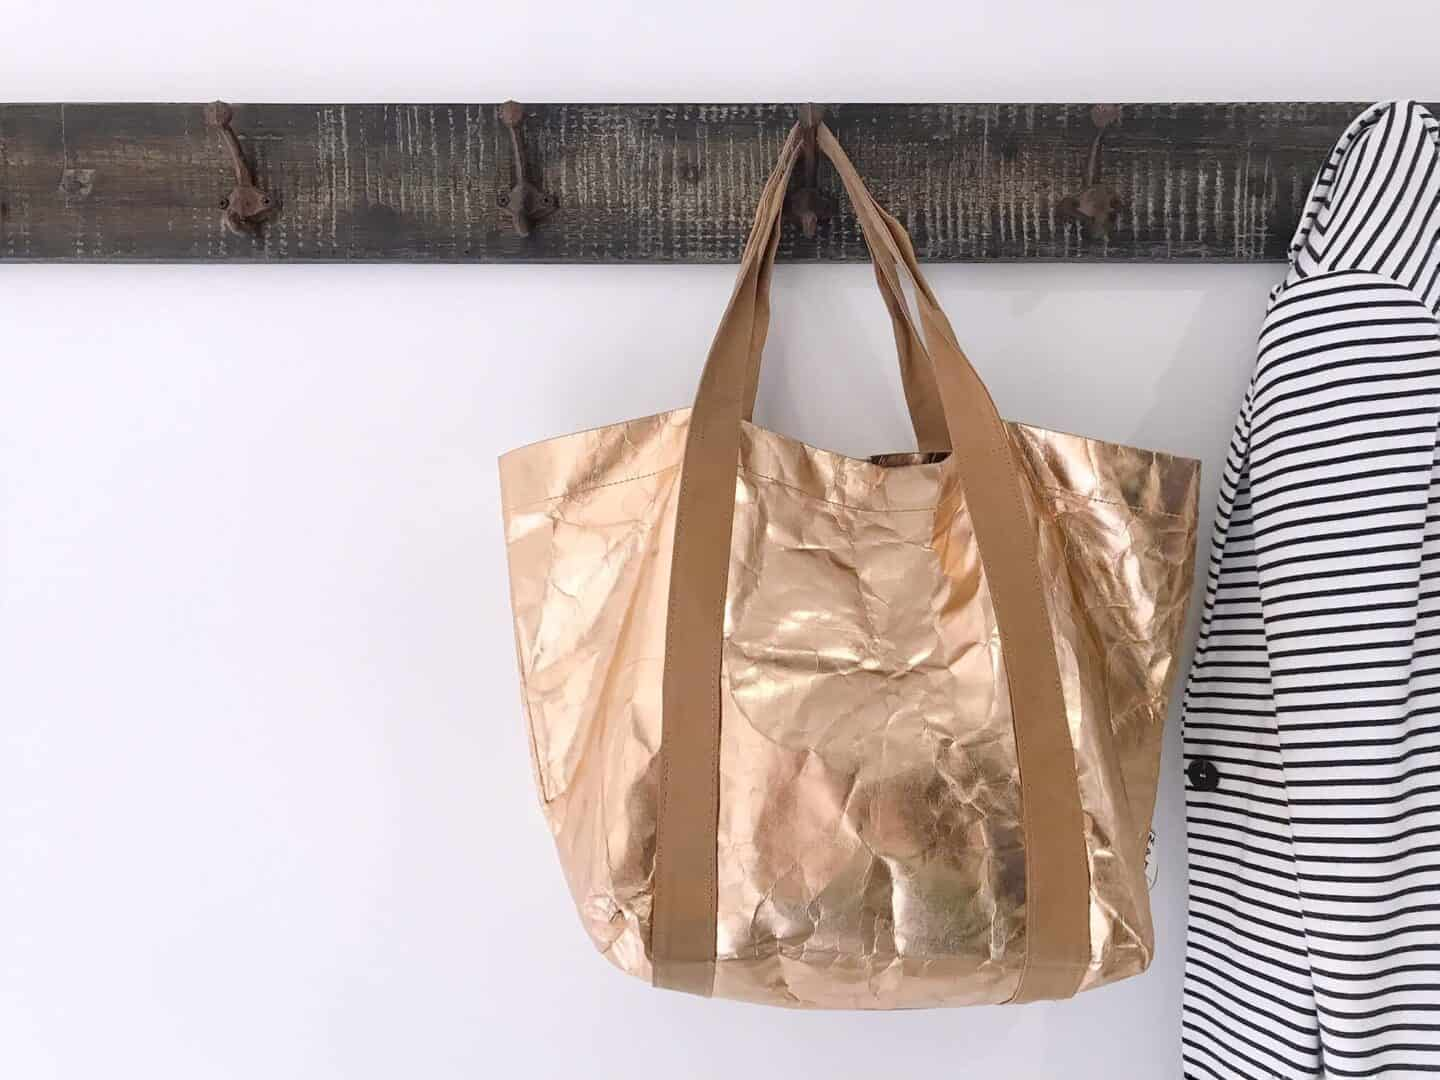 A Sustainable Tote Bag, That's Made of Paper: My Paper Tote